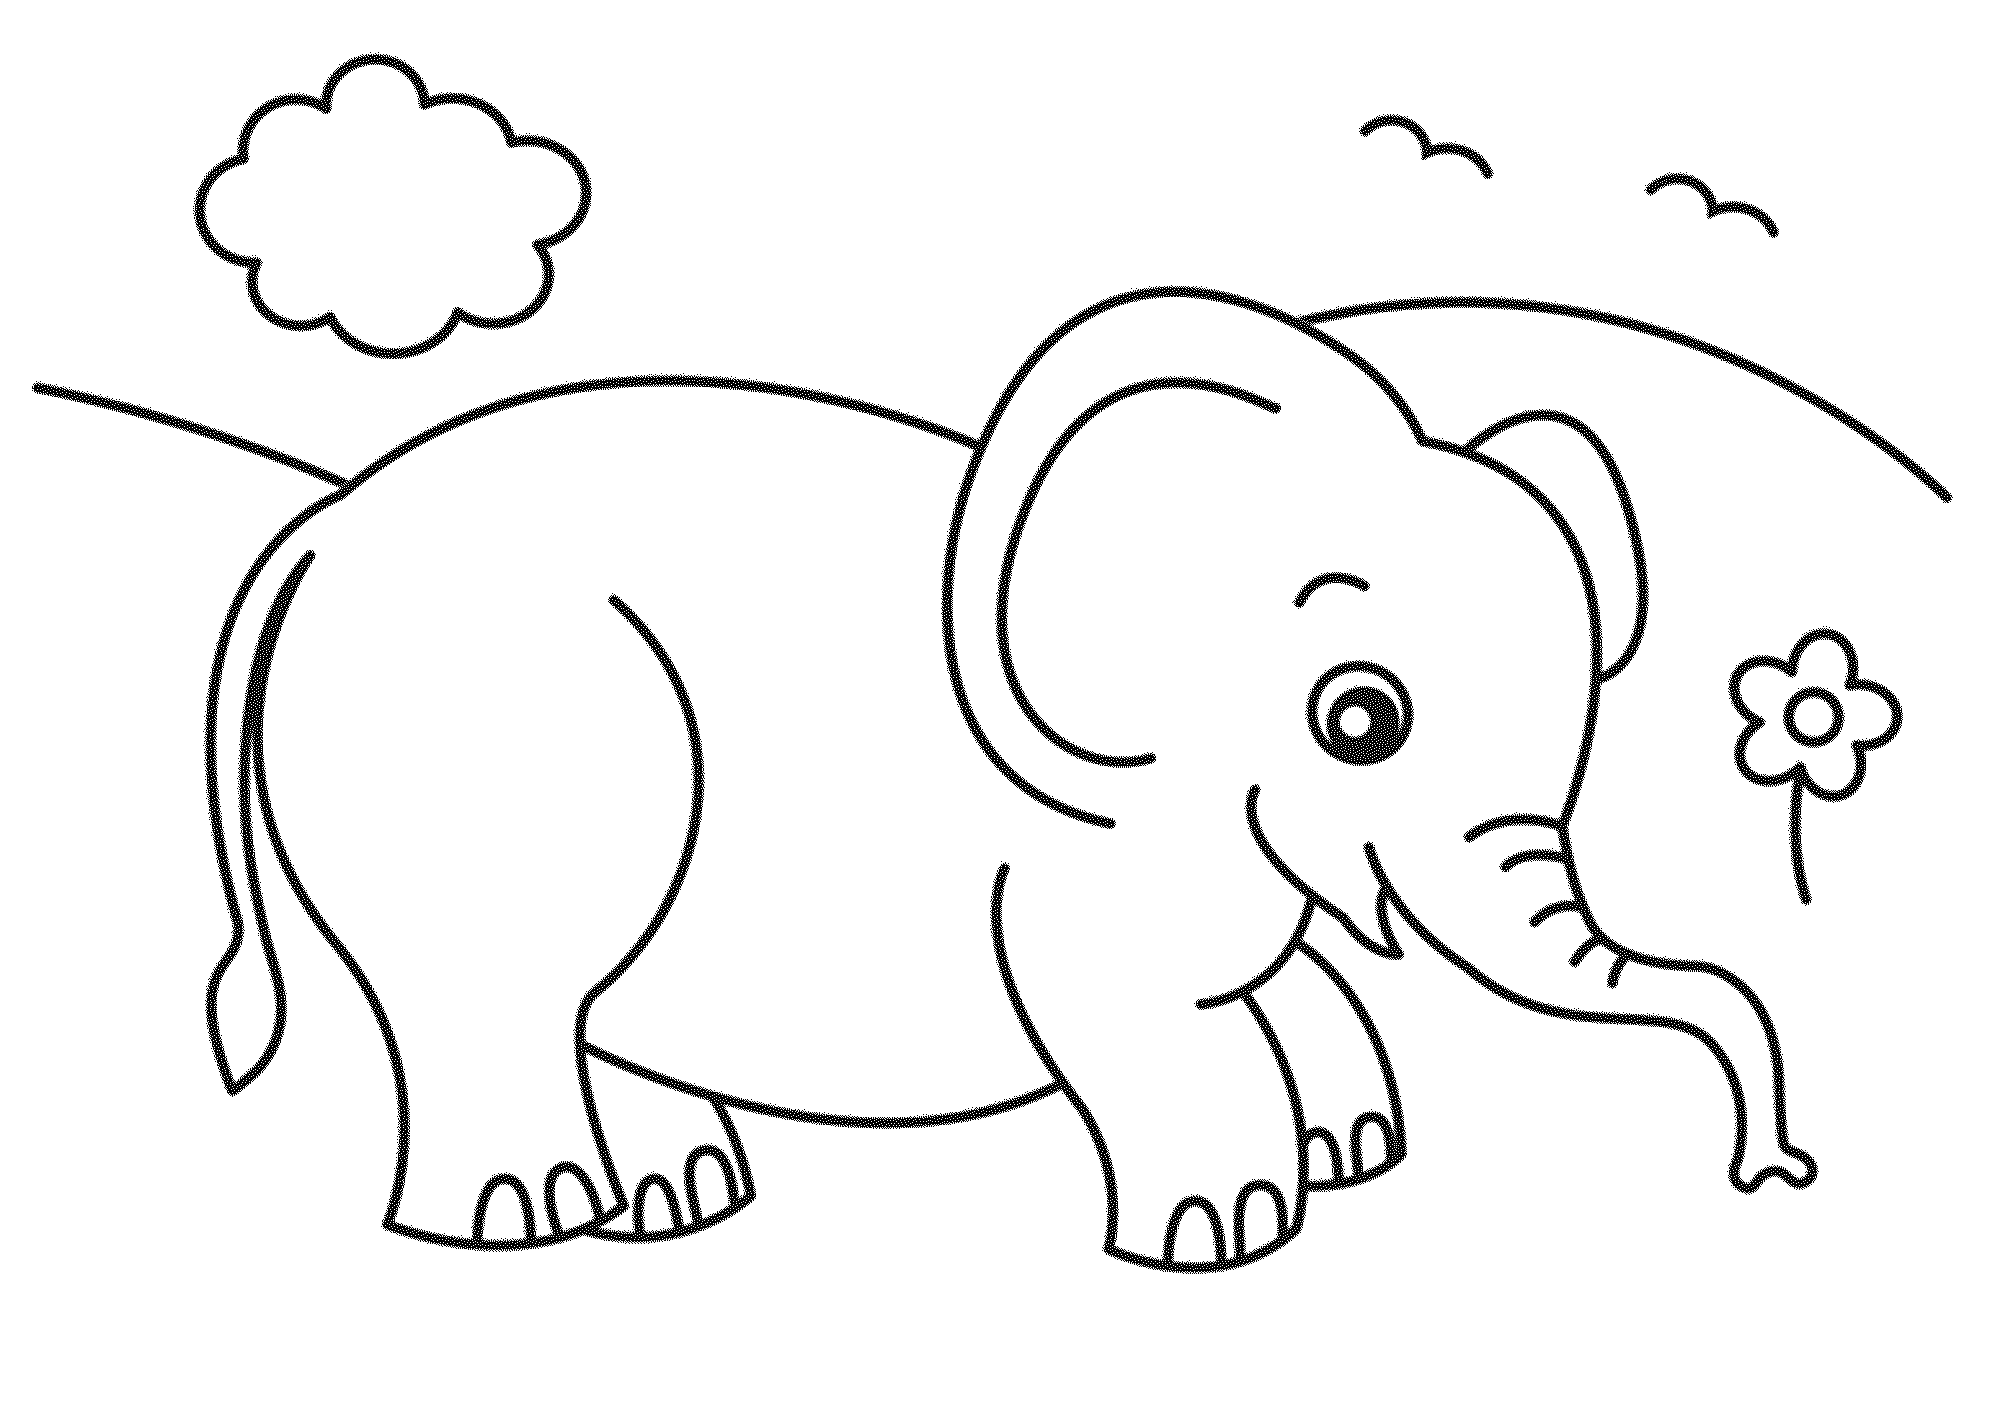 It's just a photo of Challenger Elephant Coloring Pages Printable